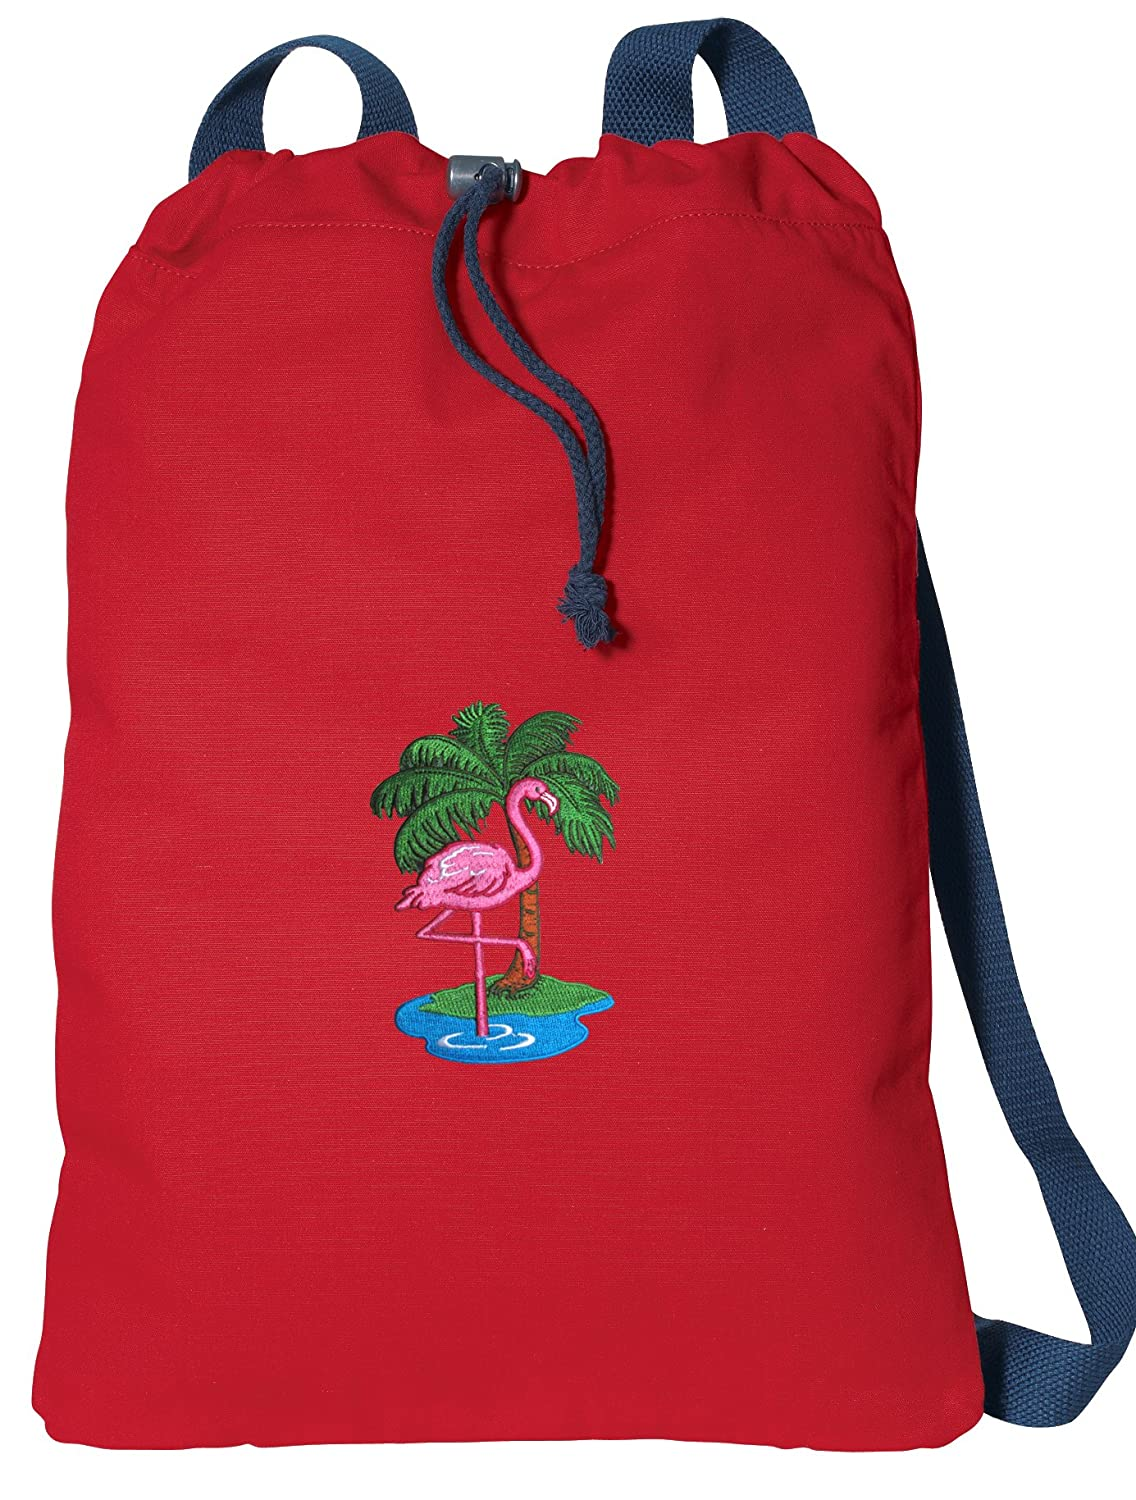 Flamingos Drawstring Backpack CANVAS Pink Flamingo Cinch Pack